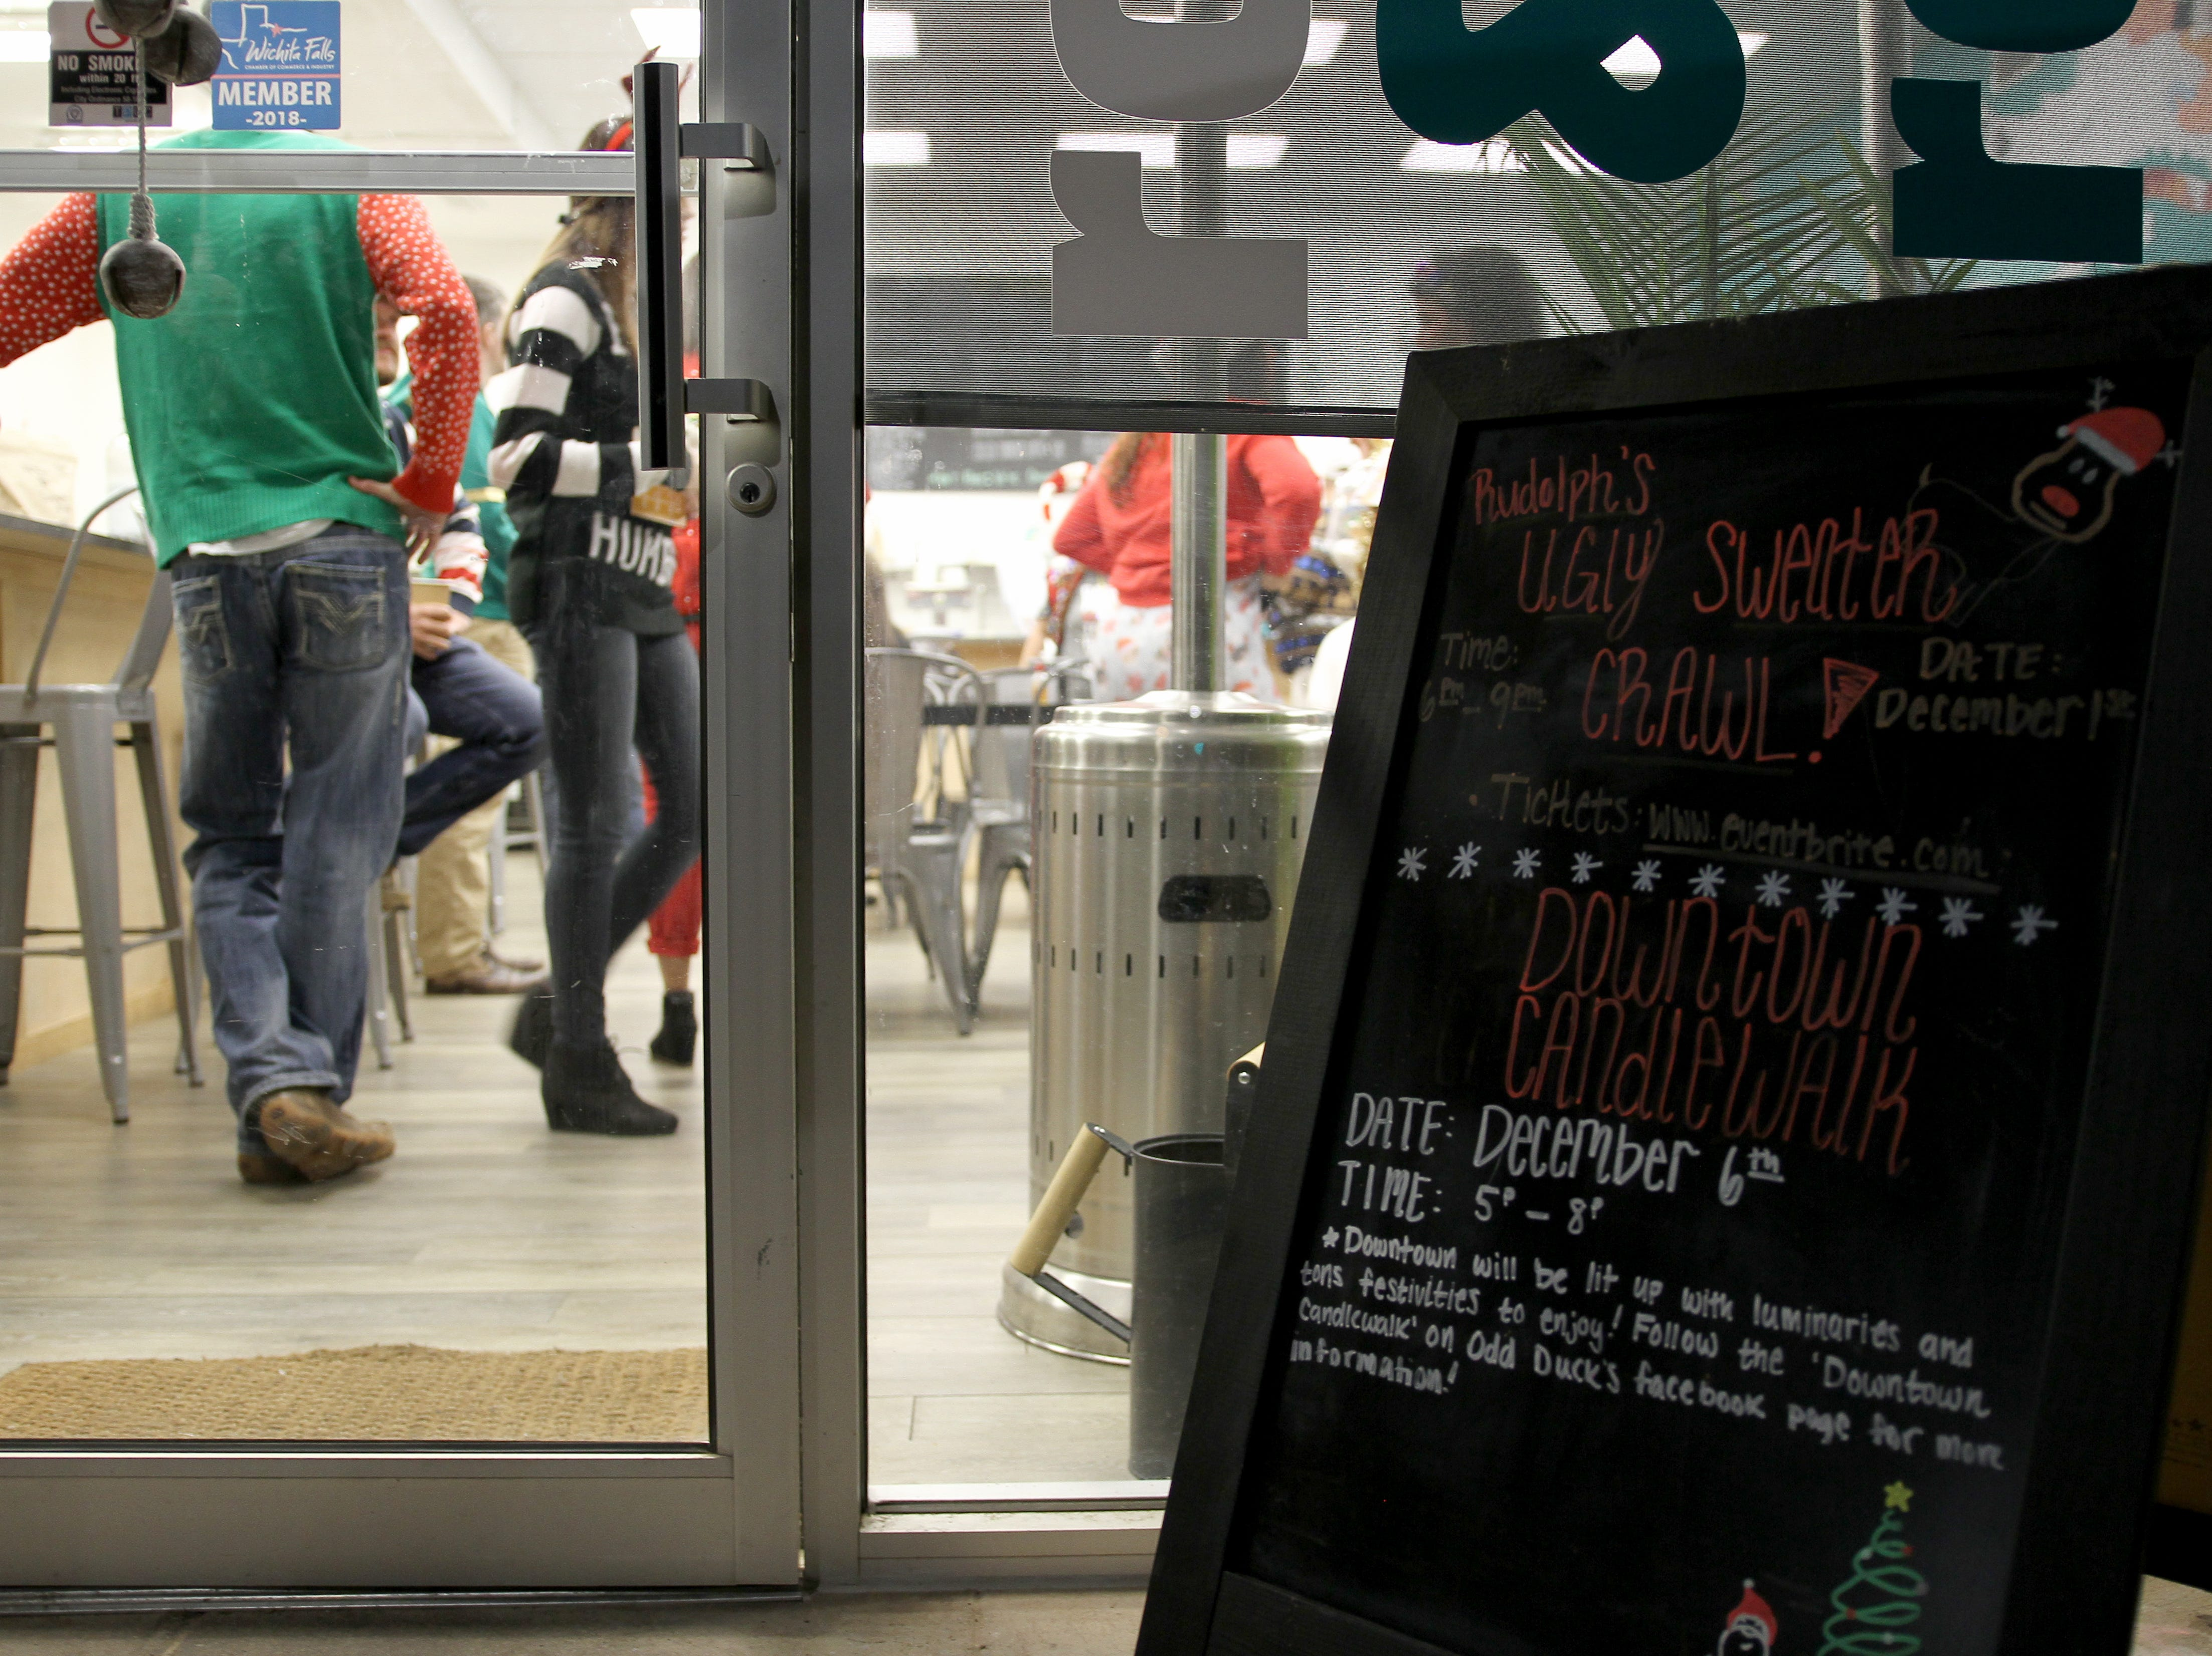 Odd Duck Coffee was one of the stops on Rudolph's First Ugly Sweater Crawl Saturday, Dec. 1, 2018, in Downtown Wichita Falls.